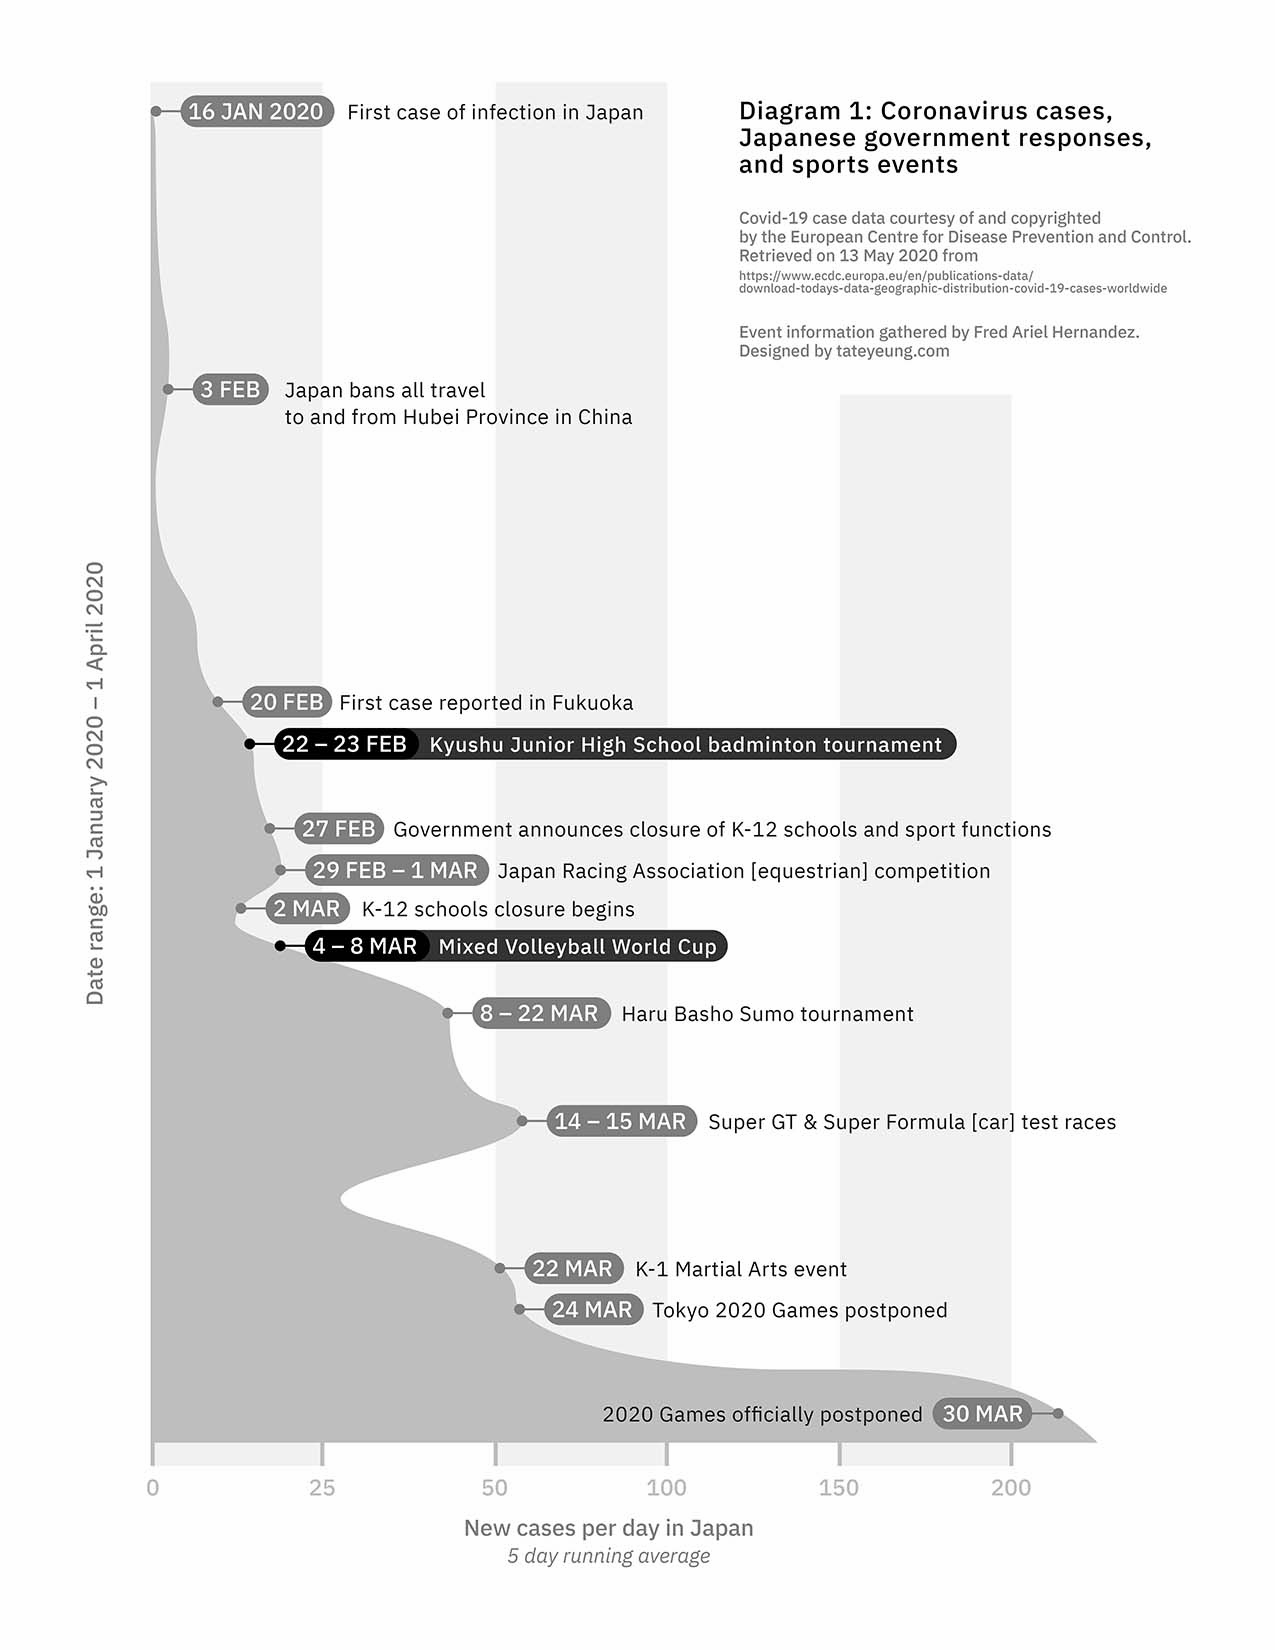 Timeline of COVID events